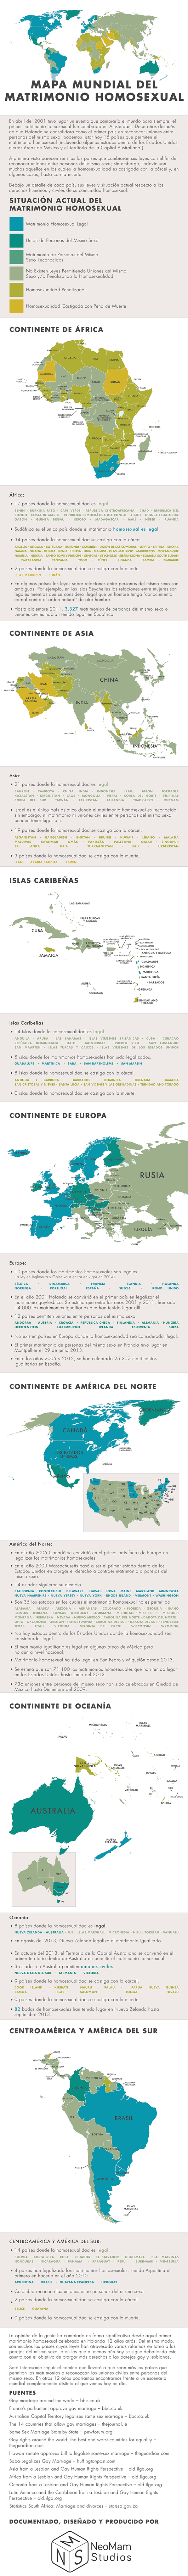 the-gay-marriage-world-map-spanish2